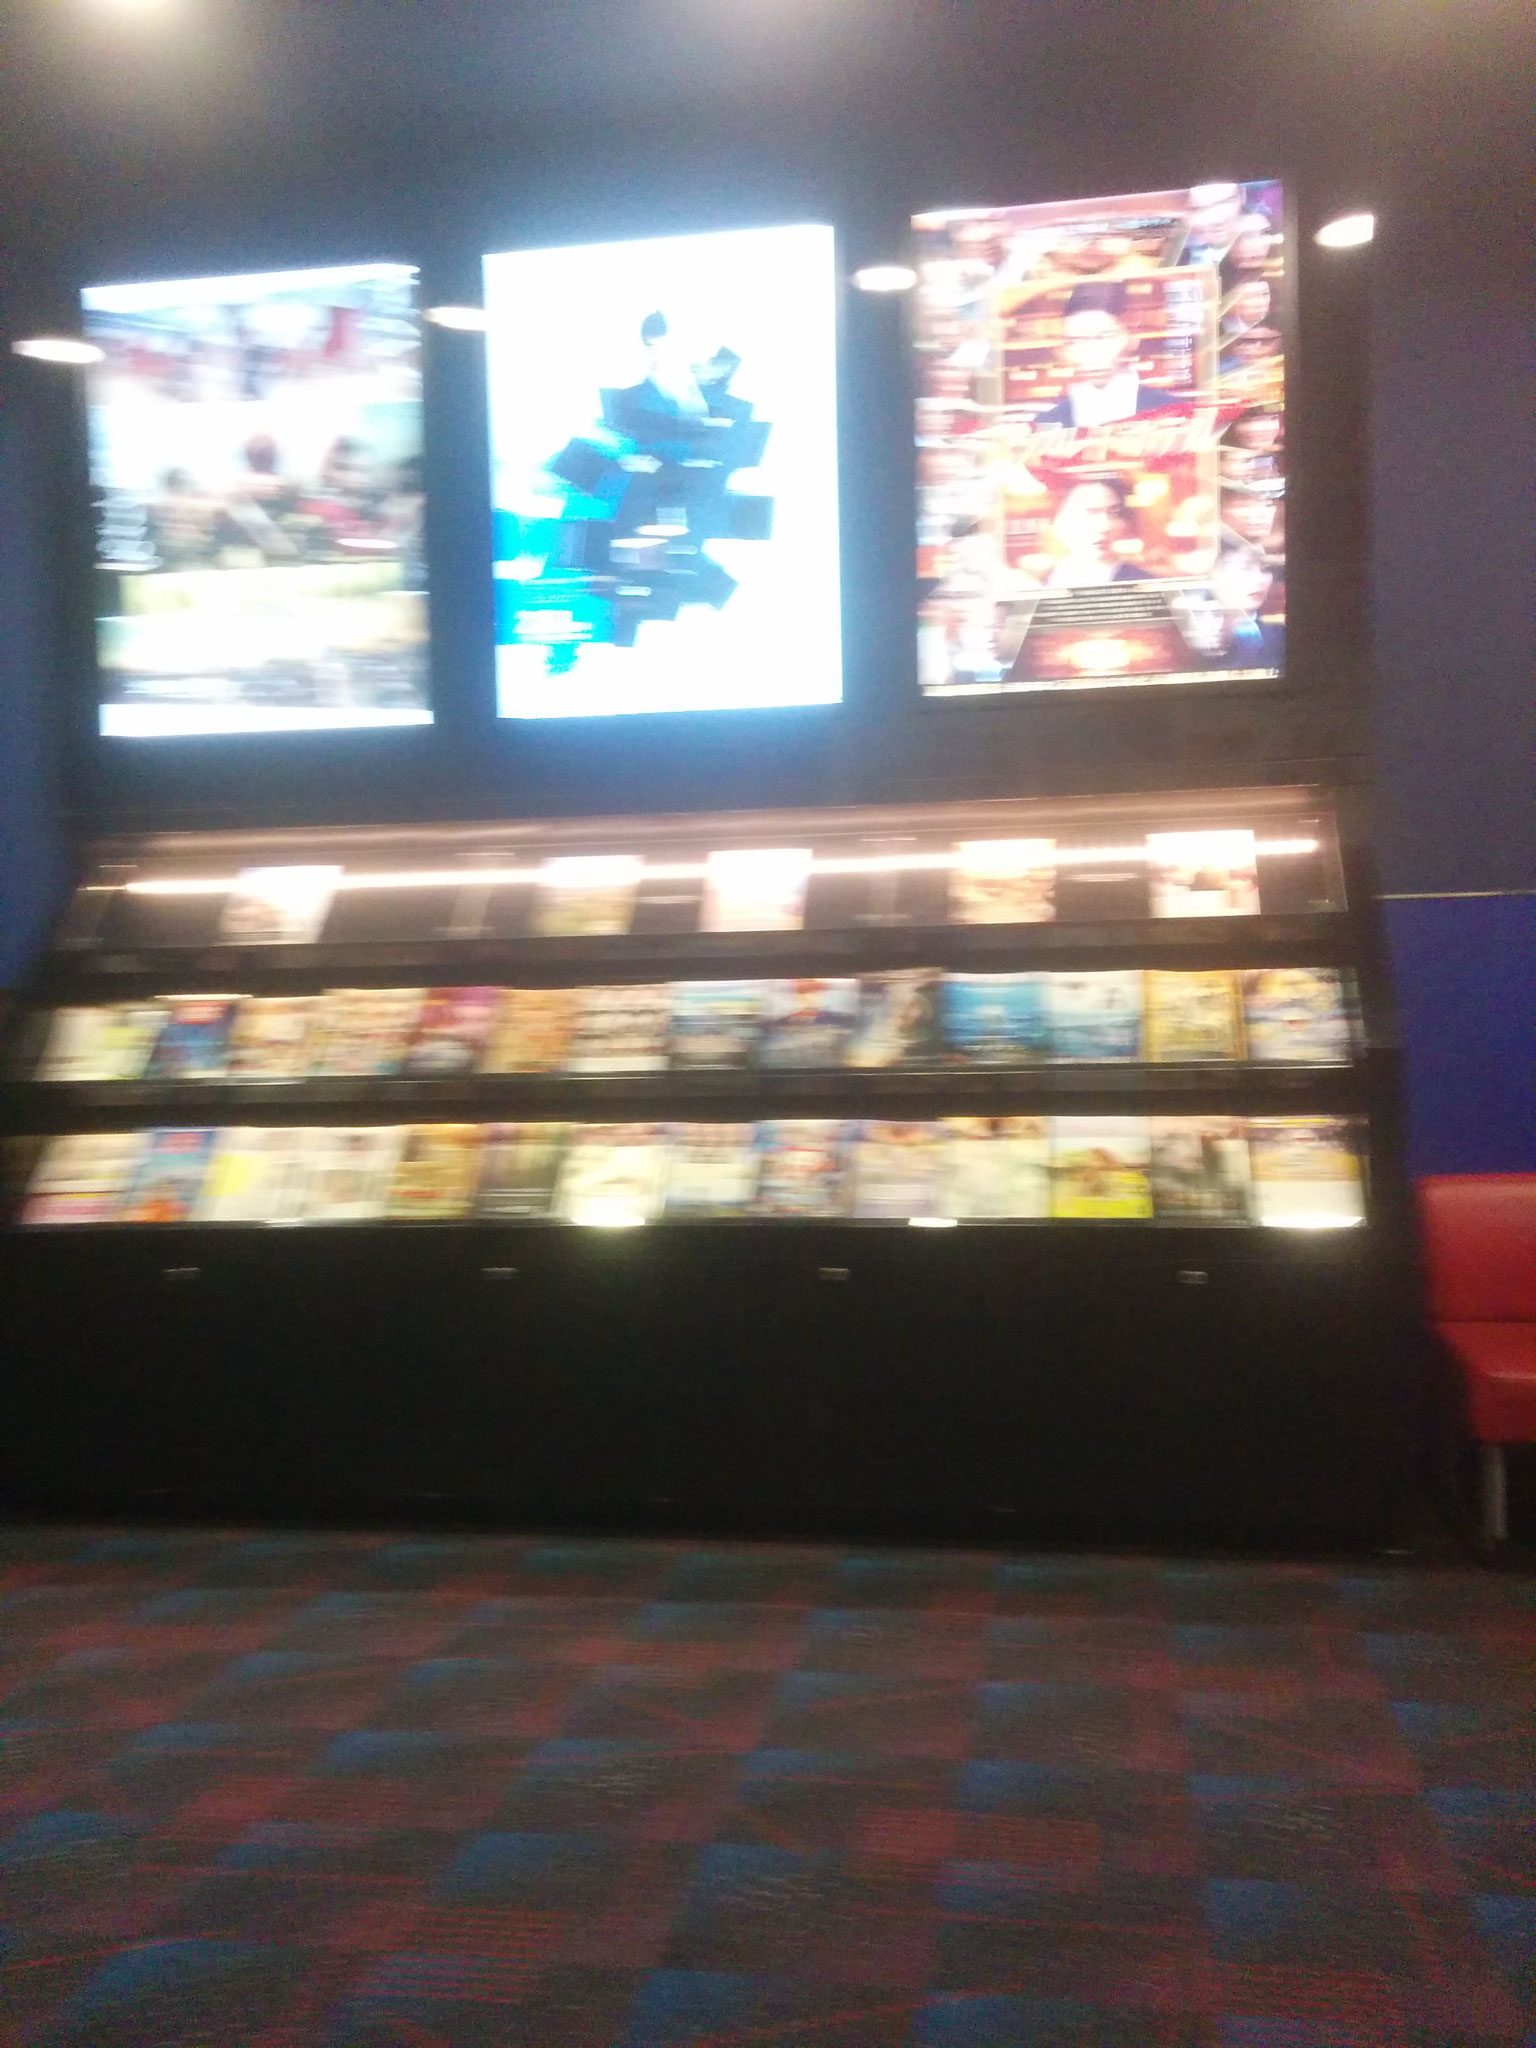 At the cinema (adverts and magazines about movies)